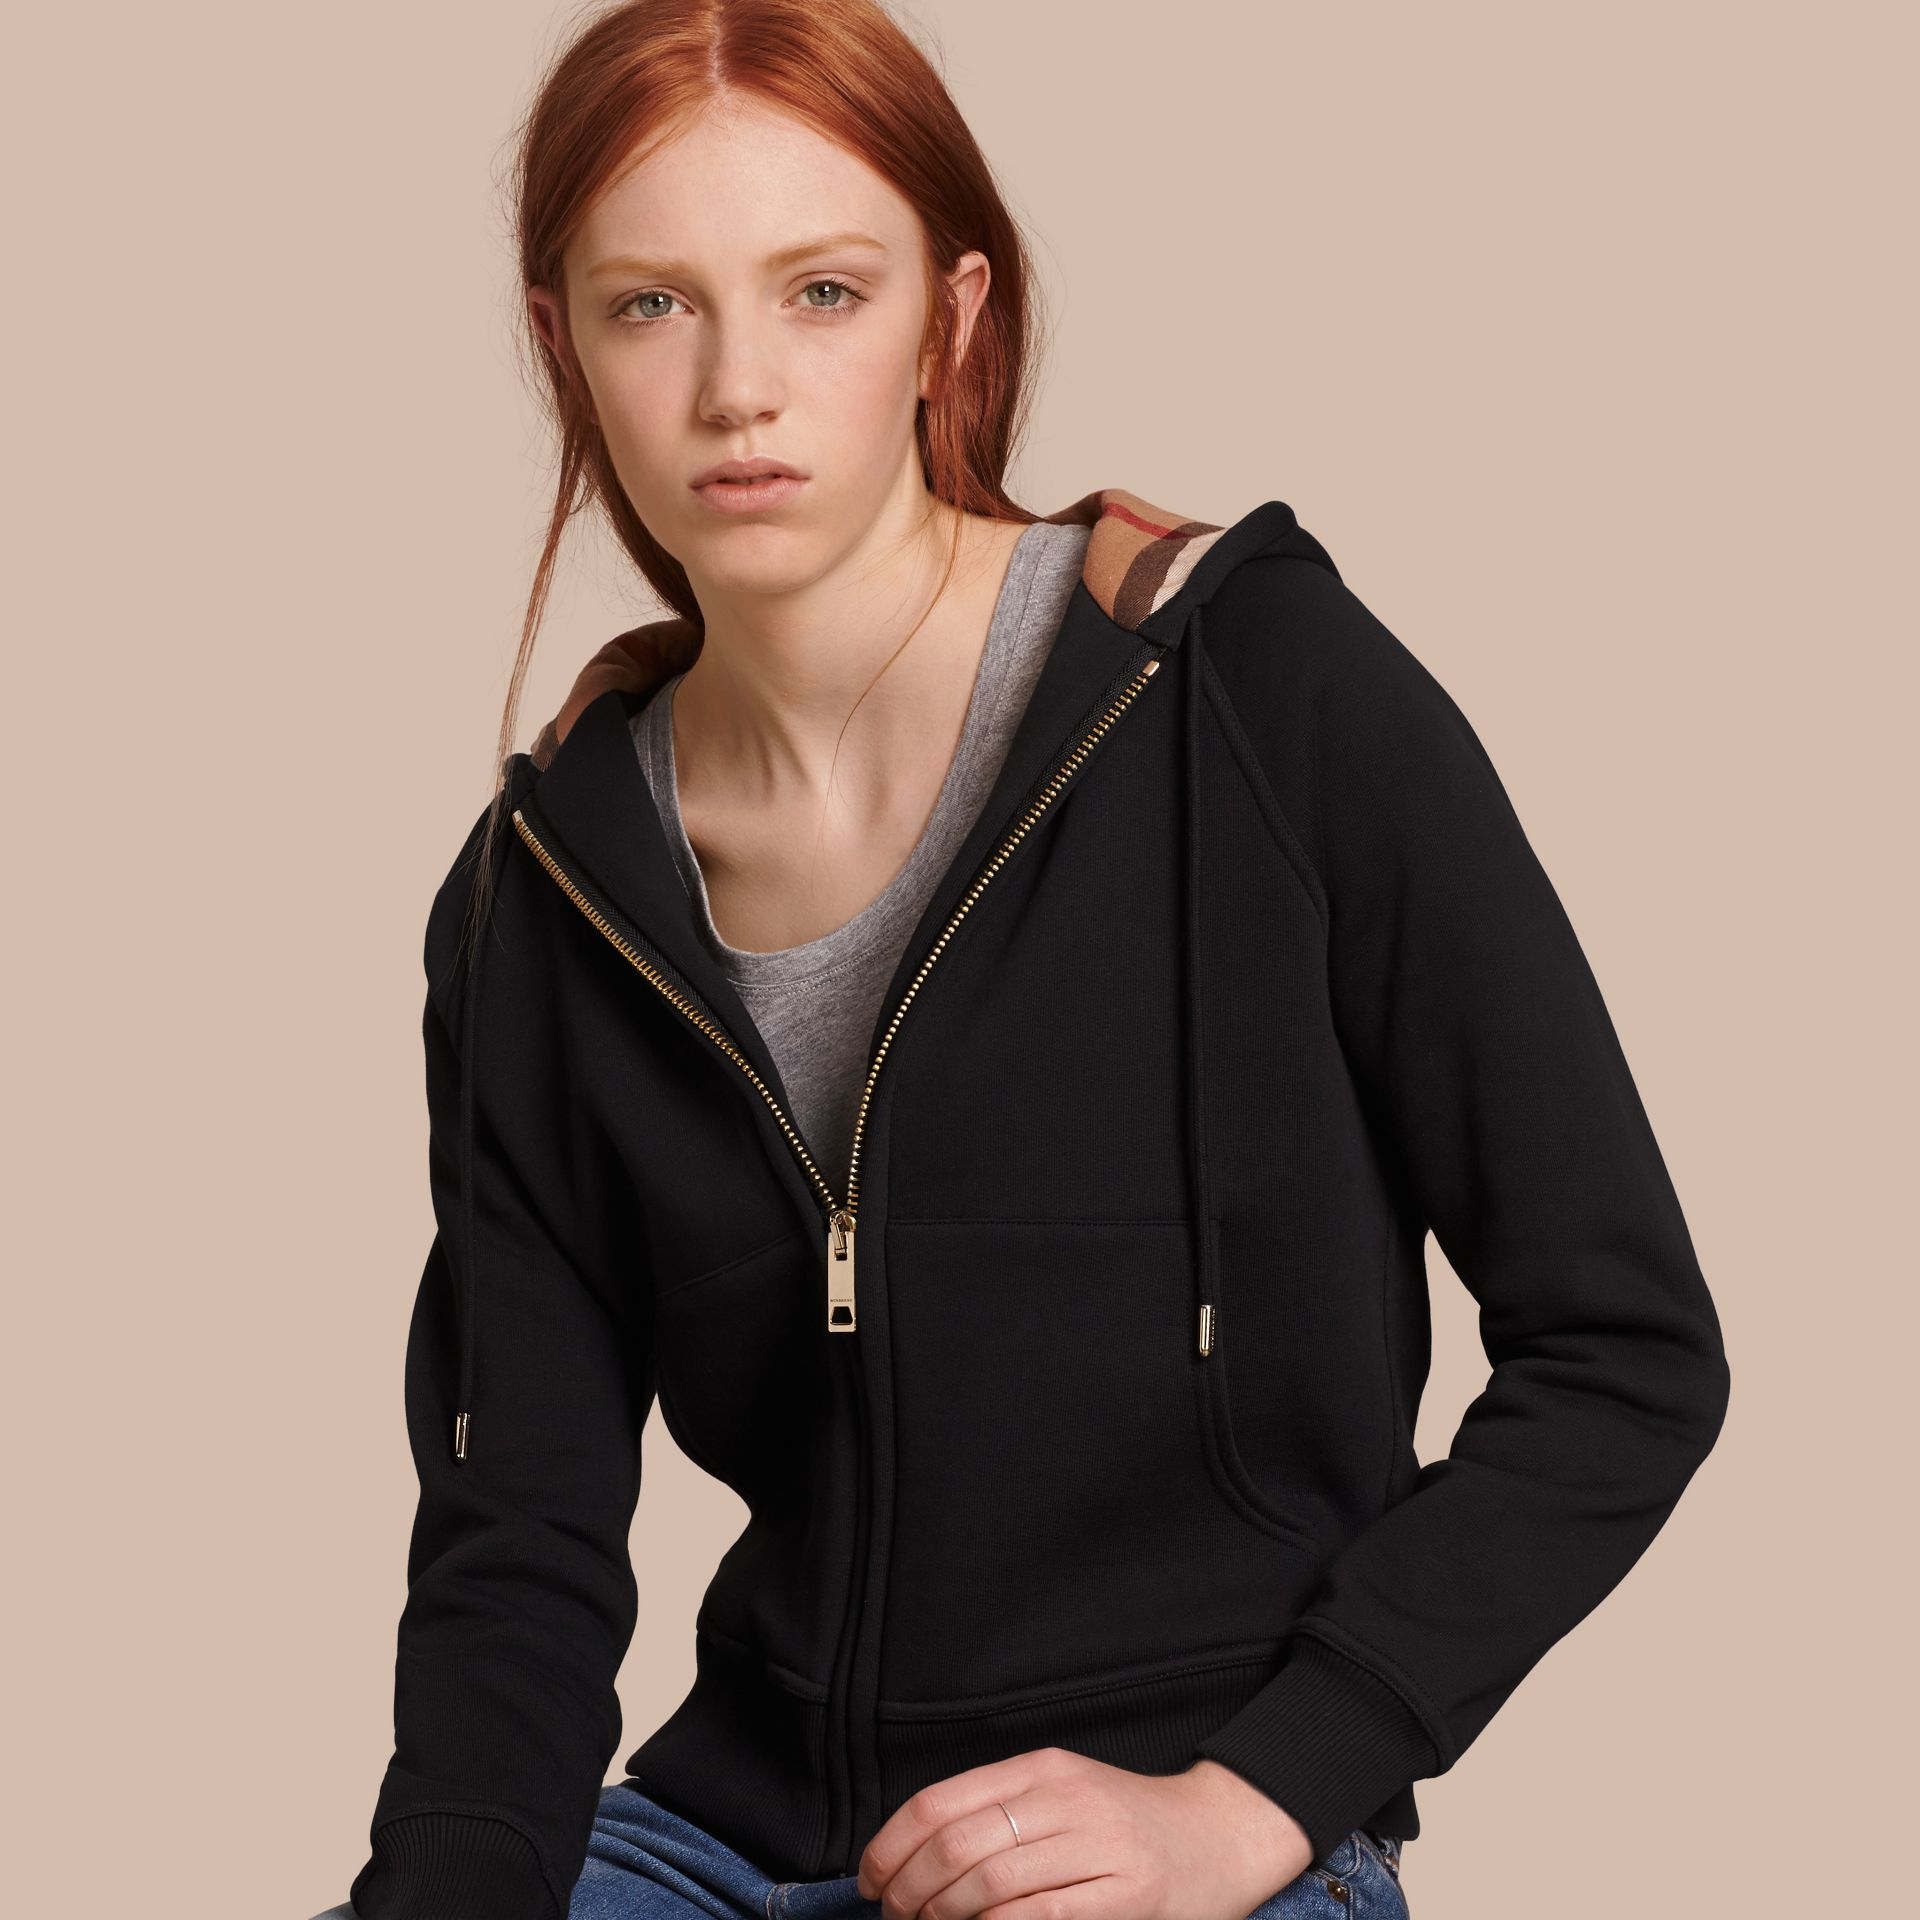 Black Hooded Zip-front Cotton Blend Sweatshirt Black - gallery image 1